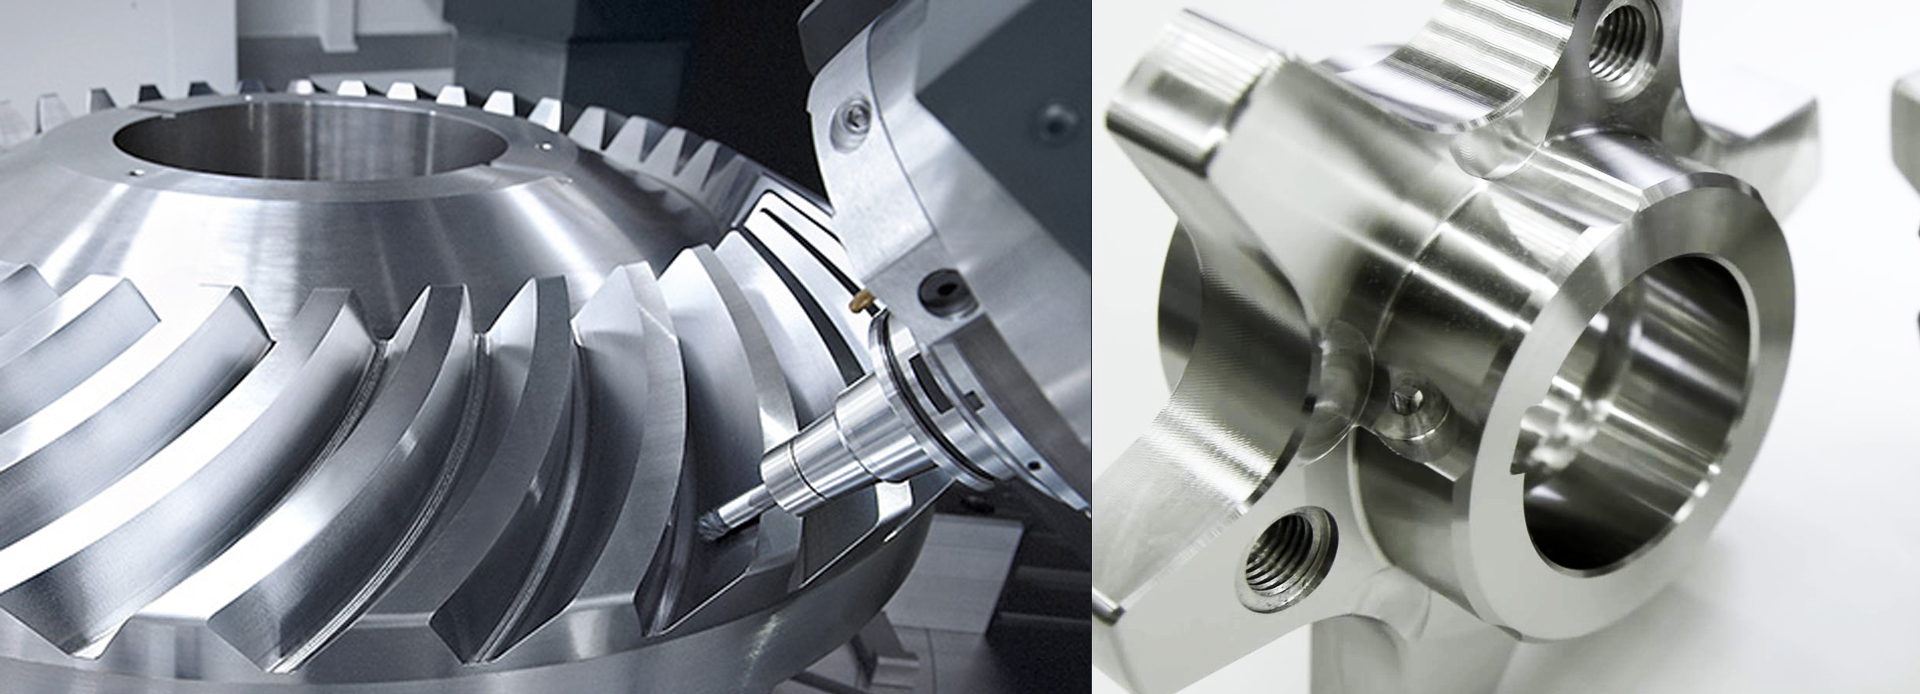 5 - AXIS CNC MACHINING